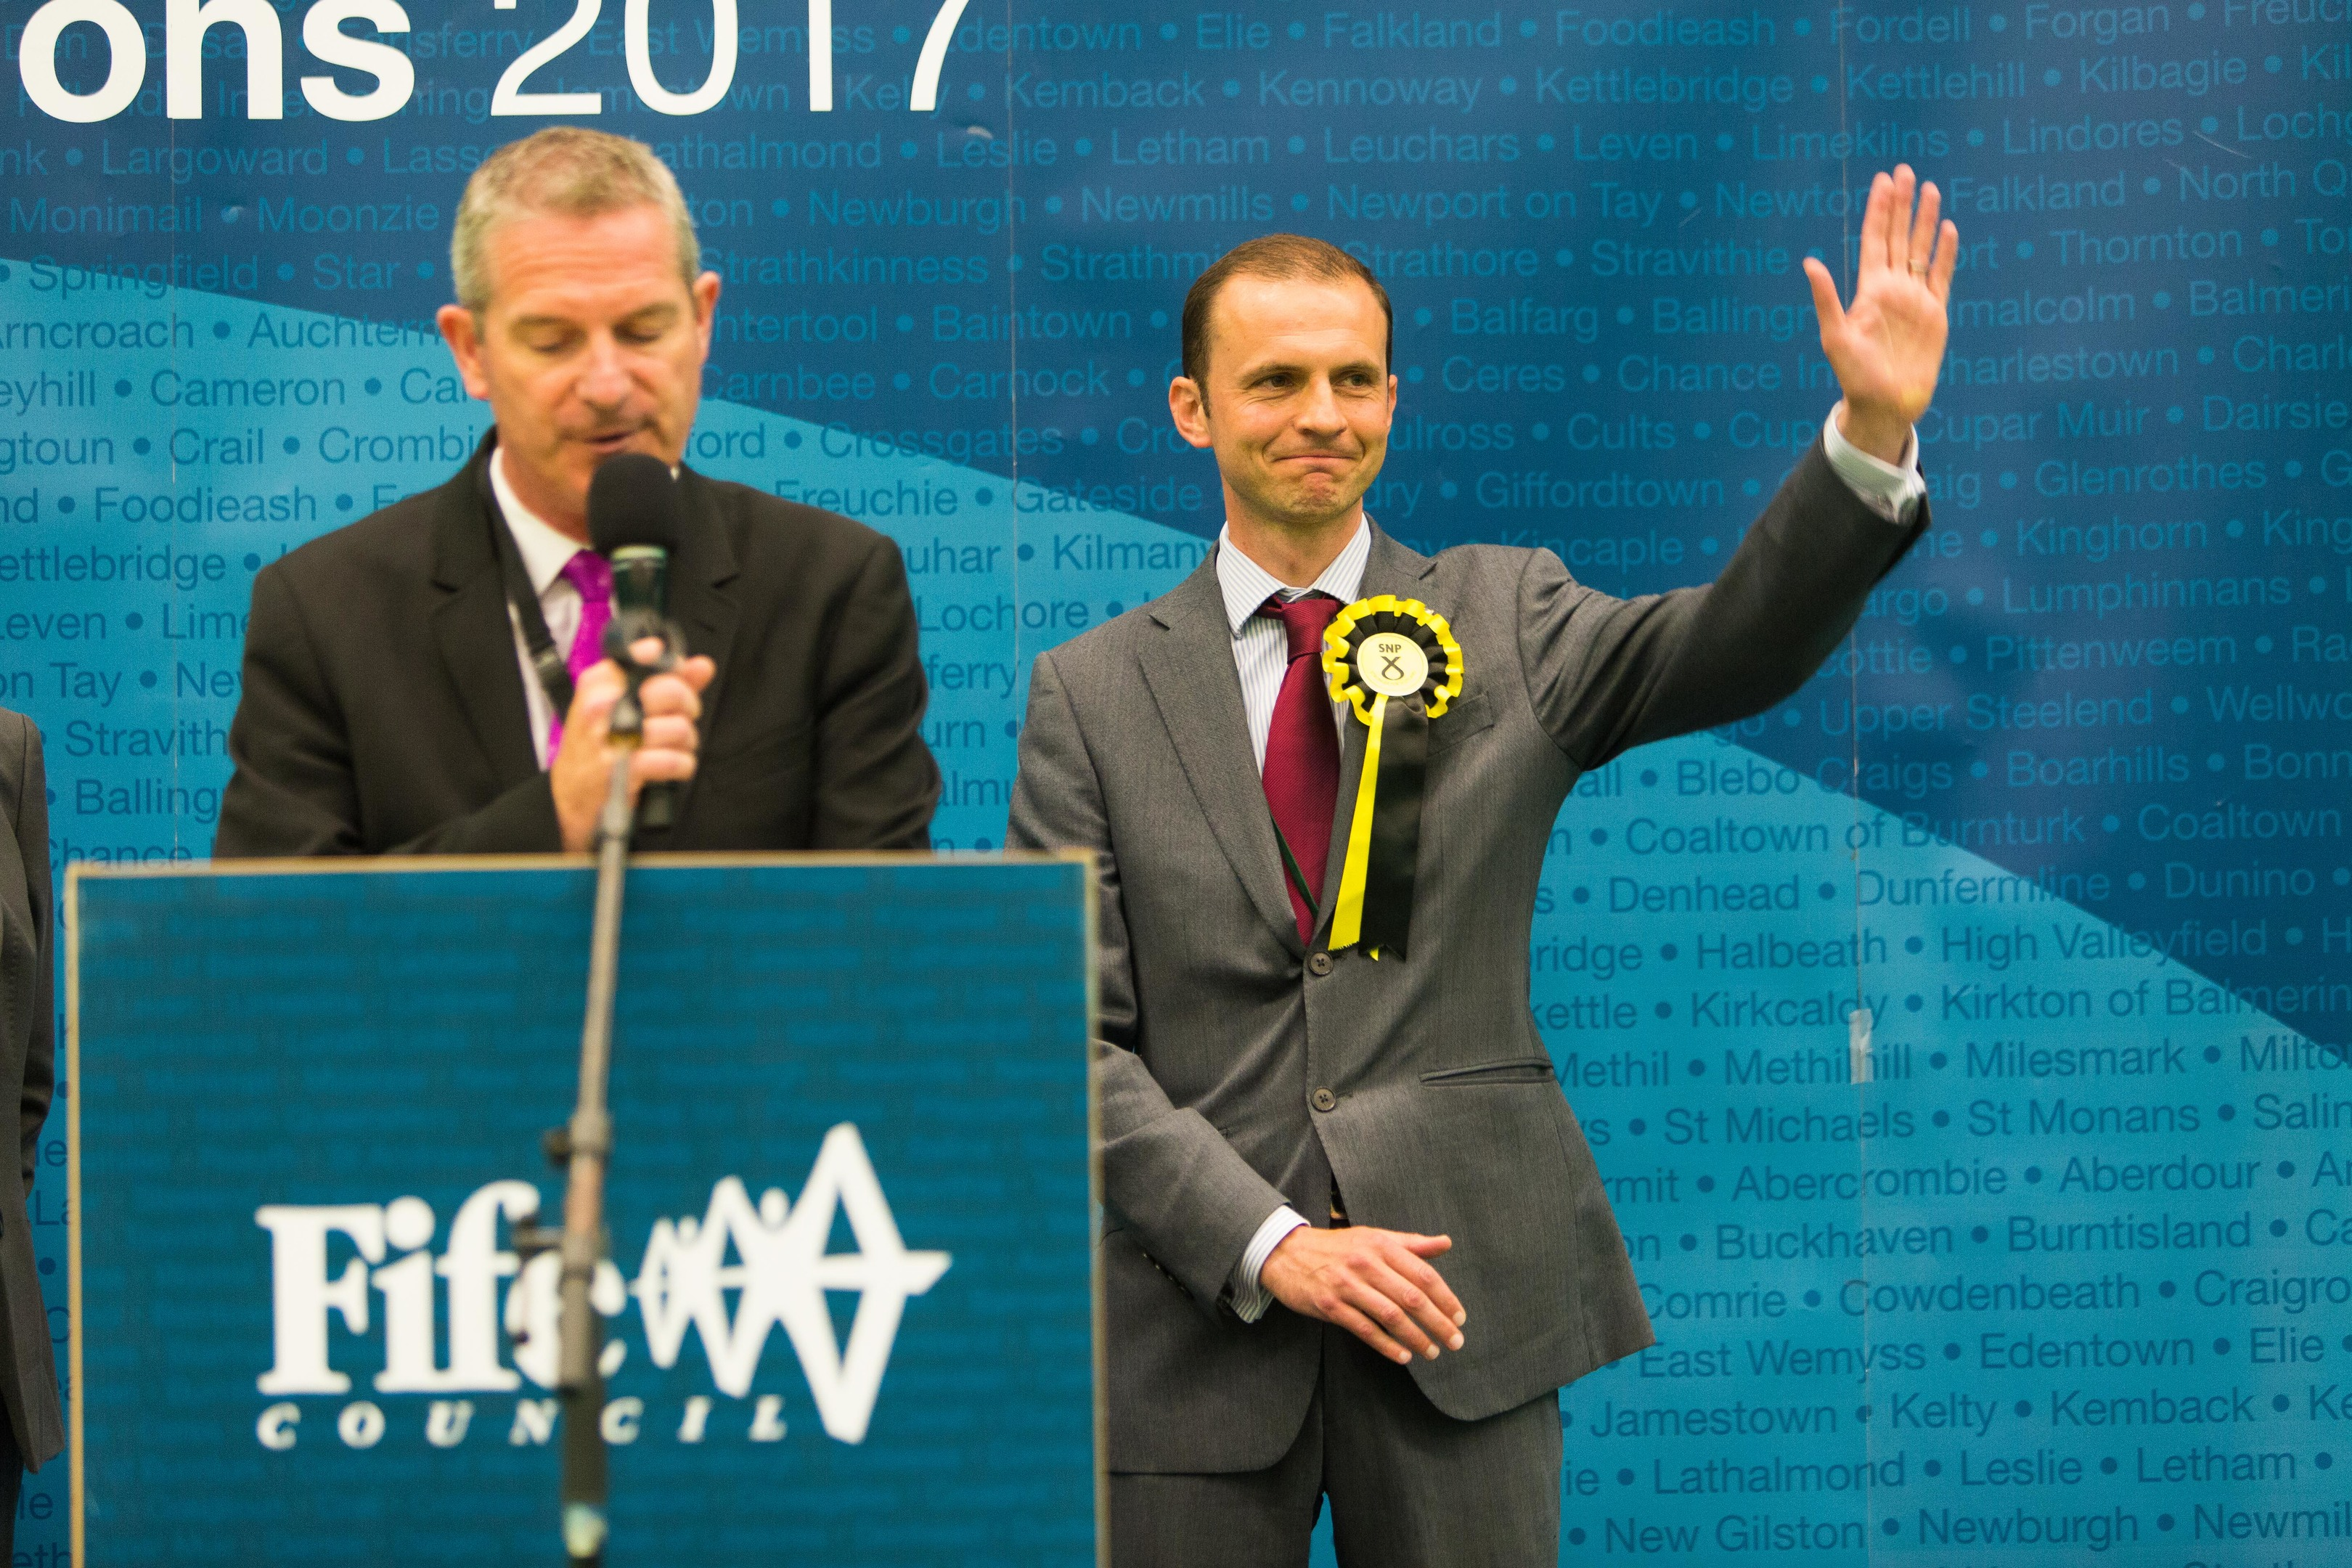 Stephen Gethins probably has a couple of hard-pressed vets to thank for his narrow win.